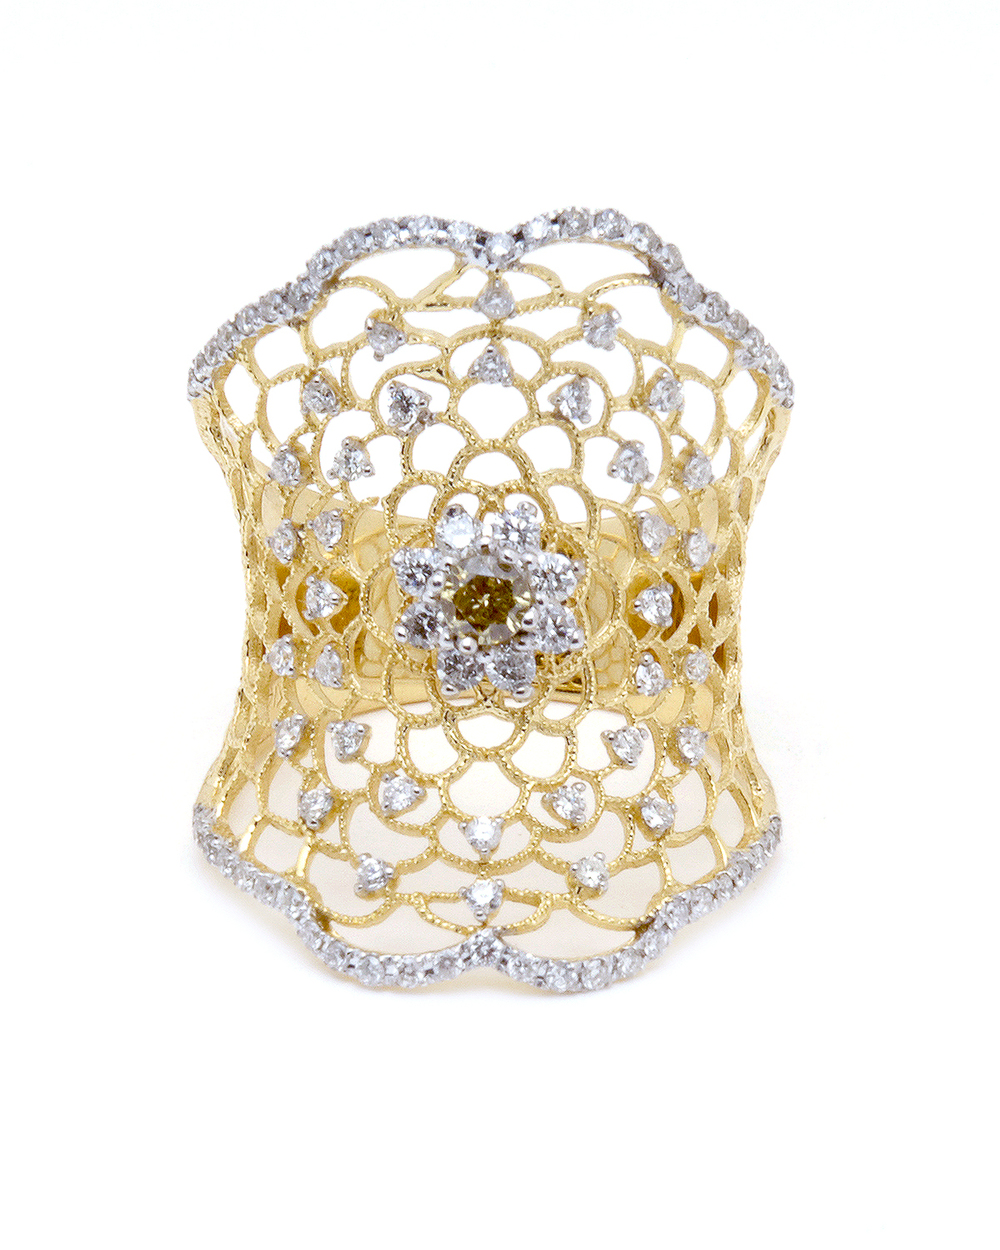 Lotus Arabesque_ring_0051_4x5.jpg